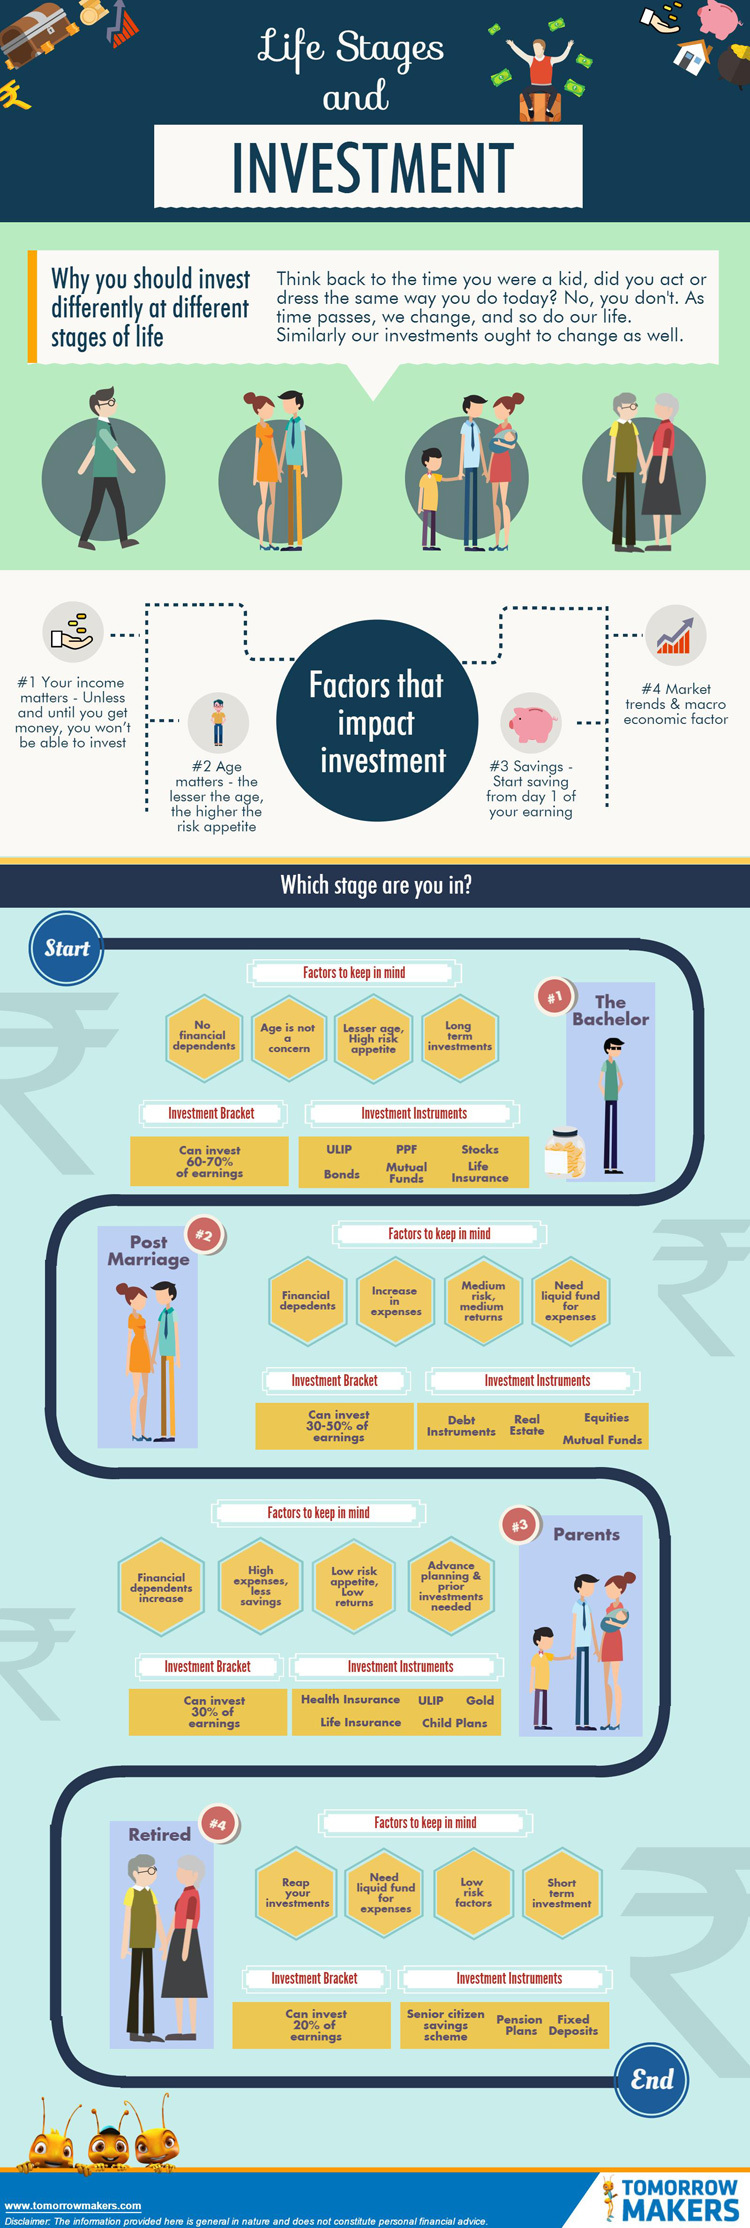 Life stages and investments #infographic